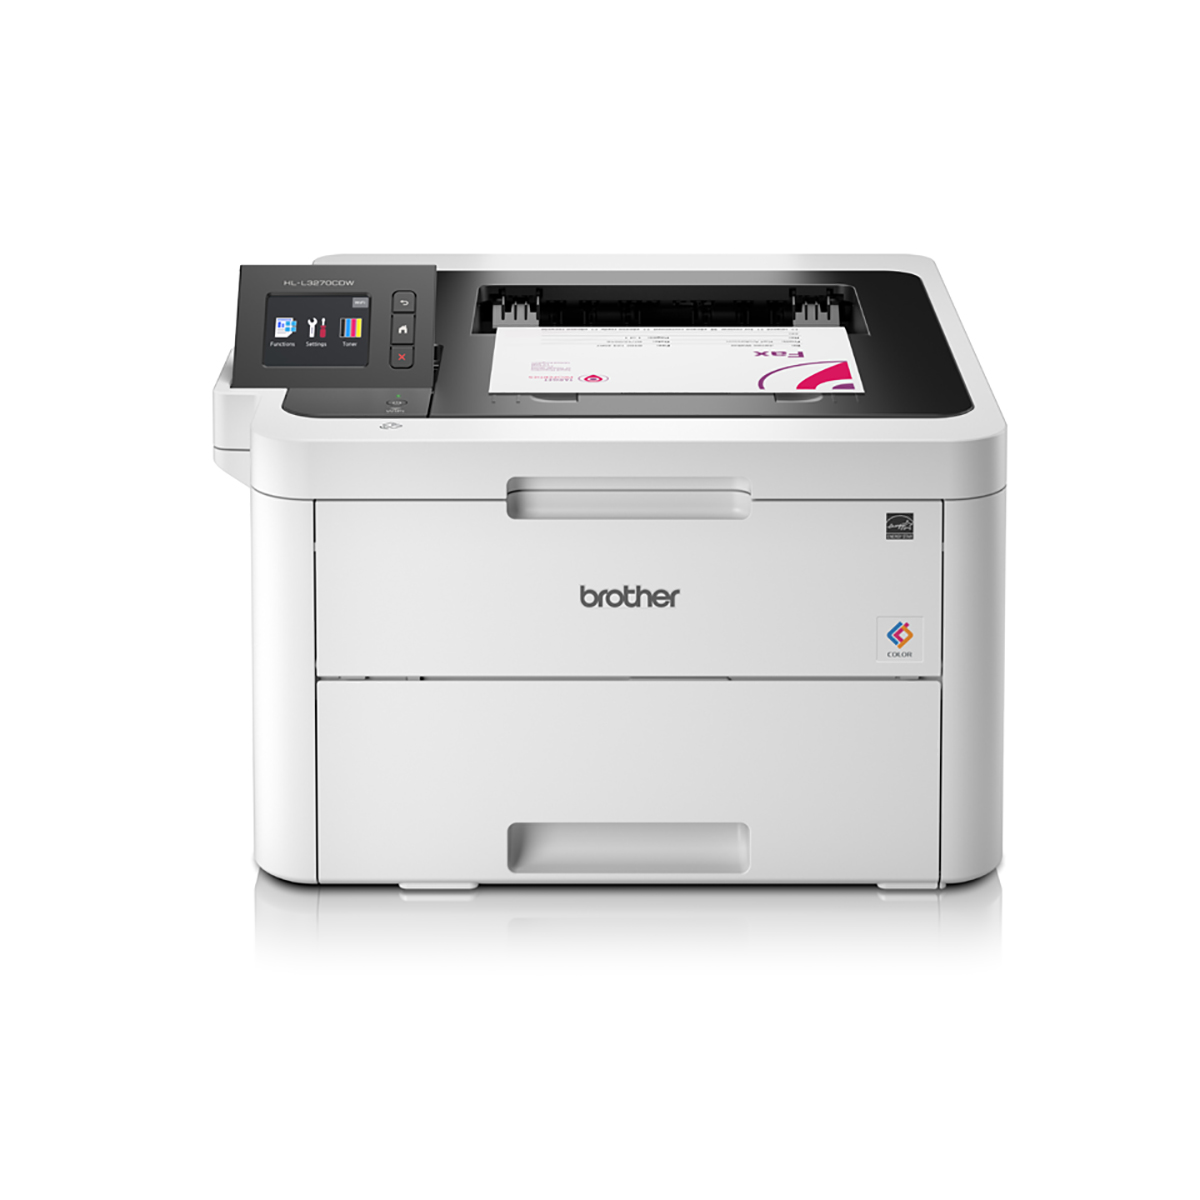 Brother HL-L3270CDW Colour LED Laser Printer